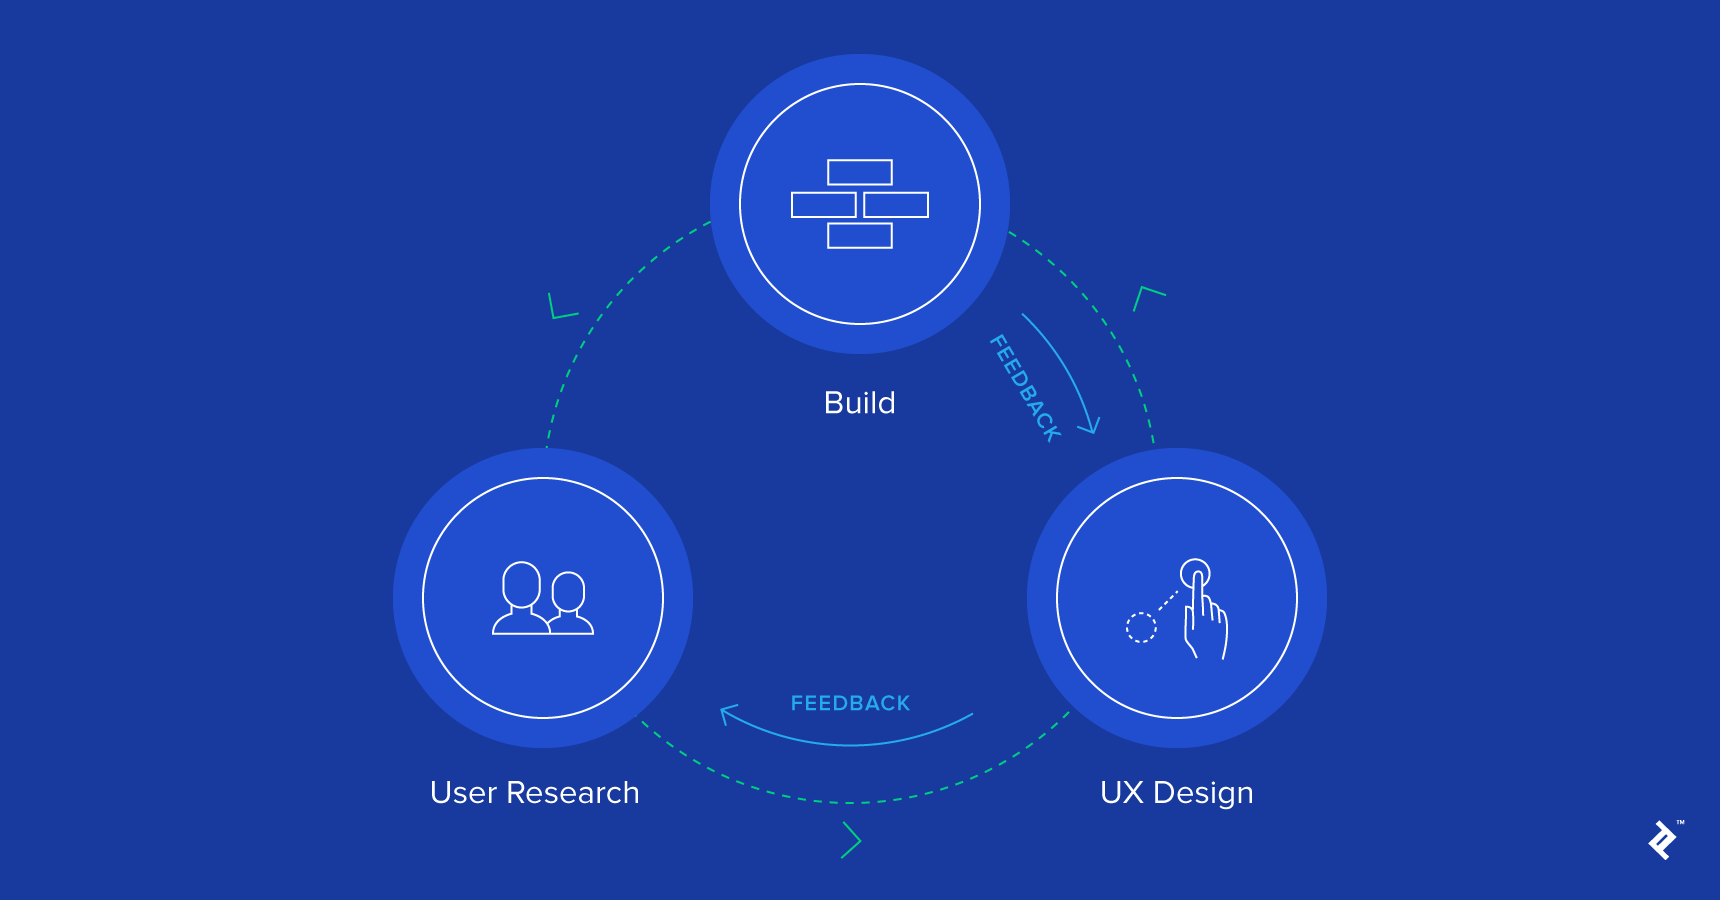 user research and user experience design